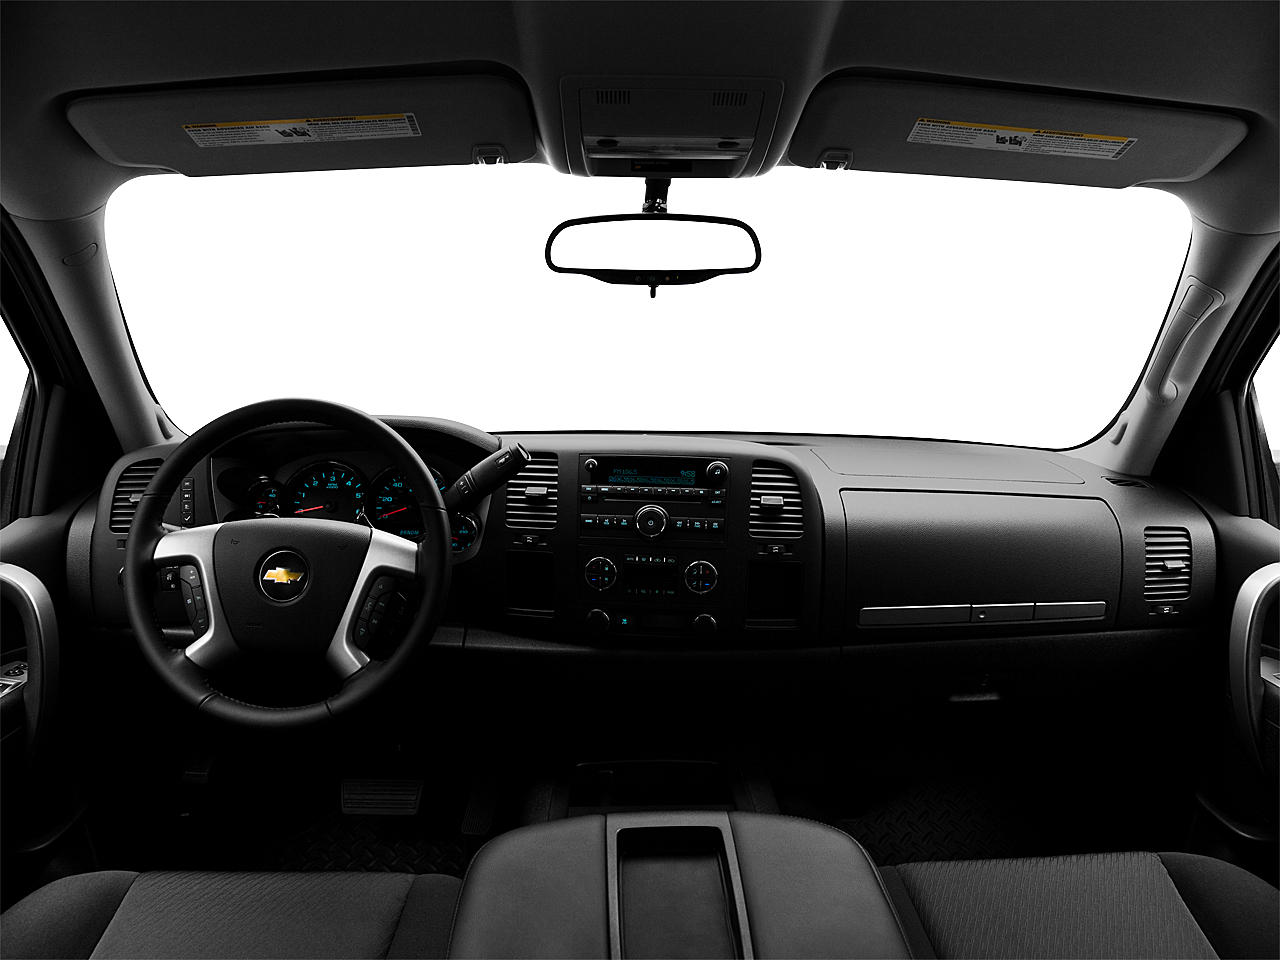 2011 Chevrolet Silverado 1500 LT, centered wide dash shot